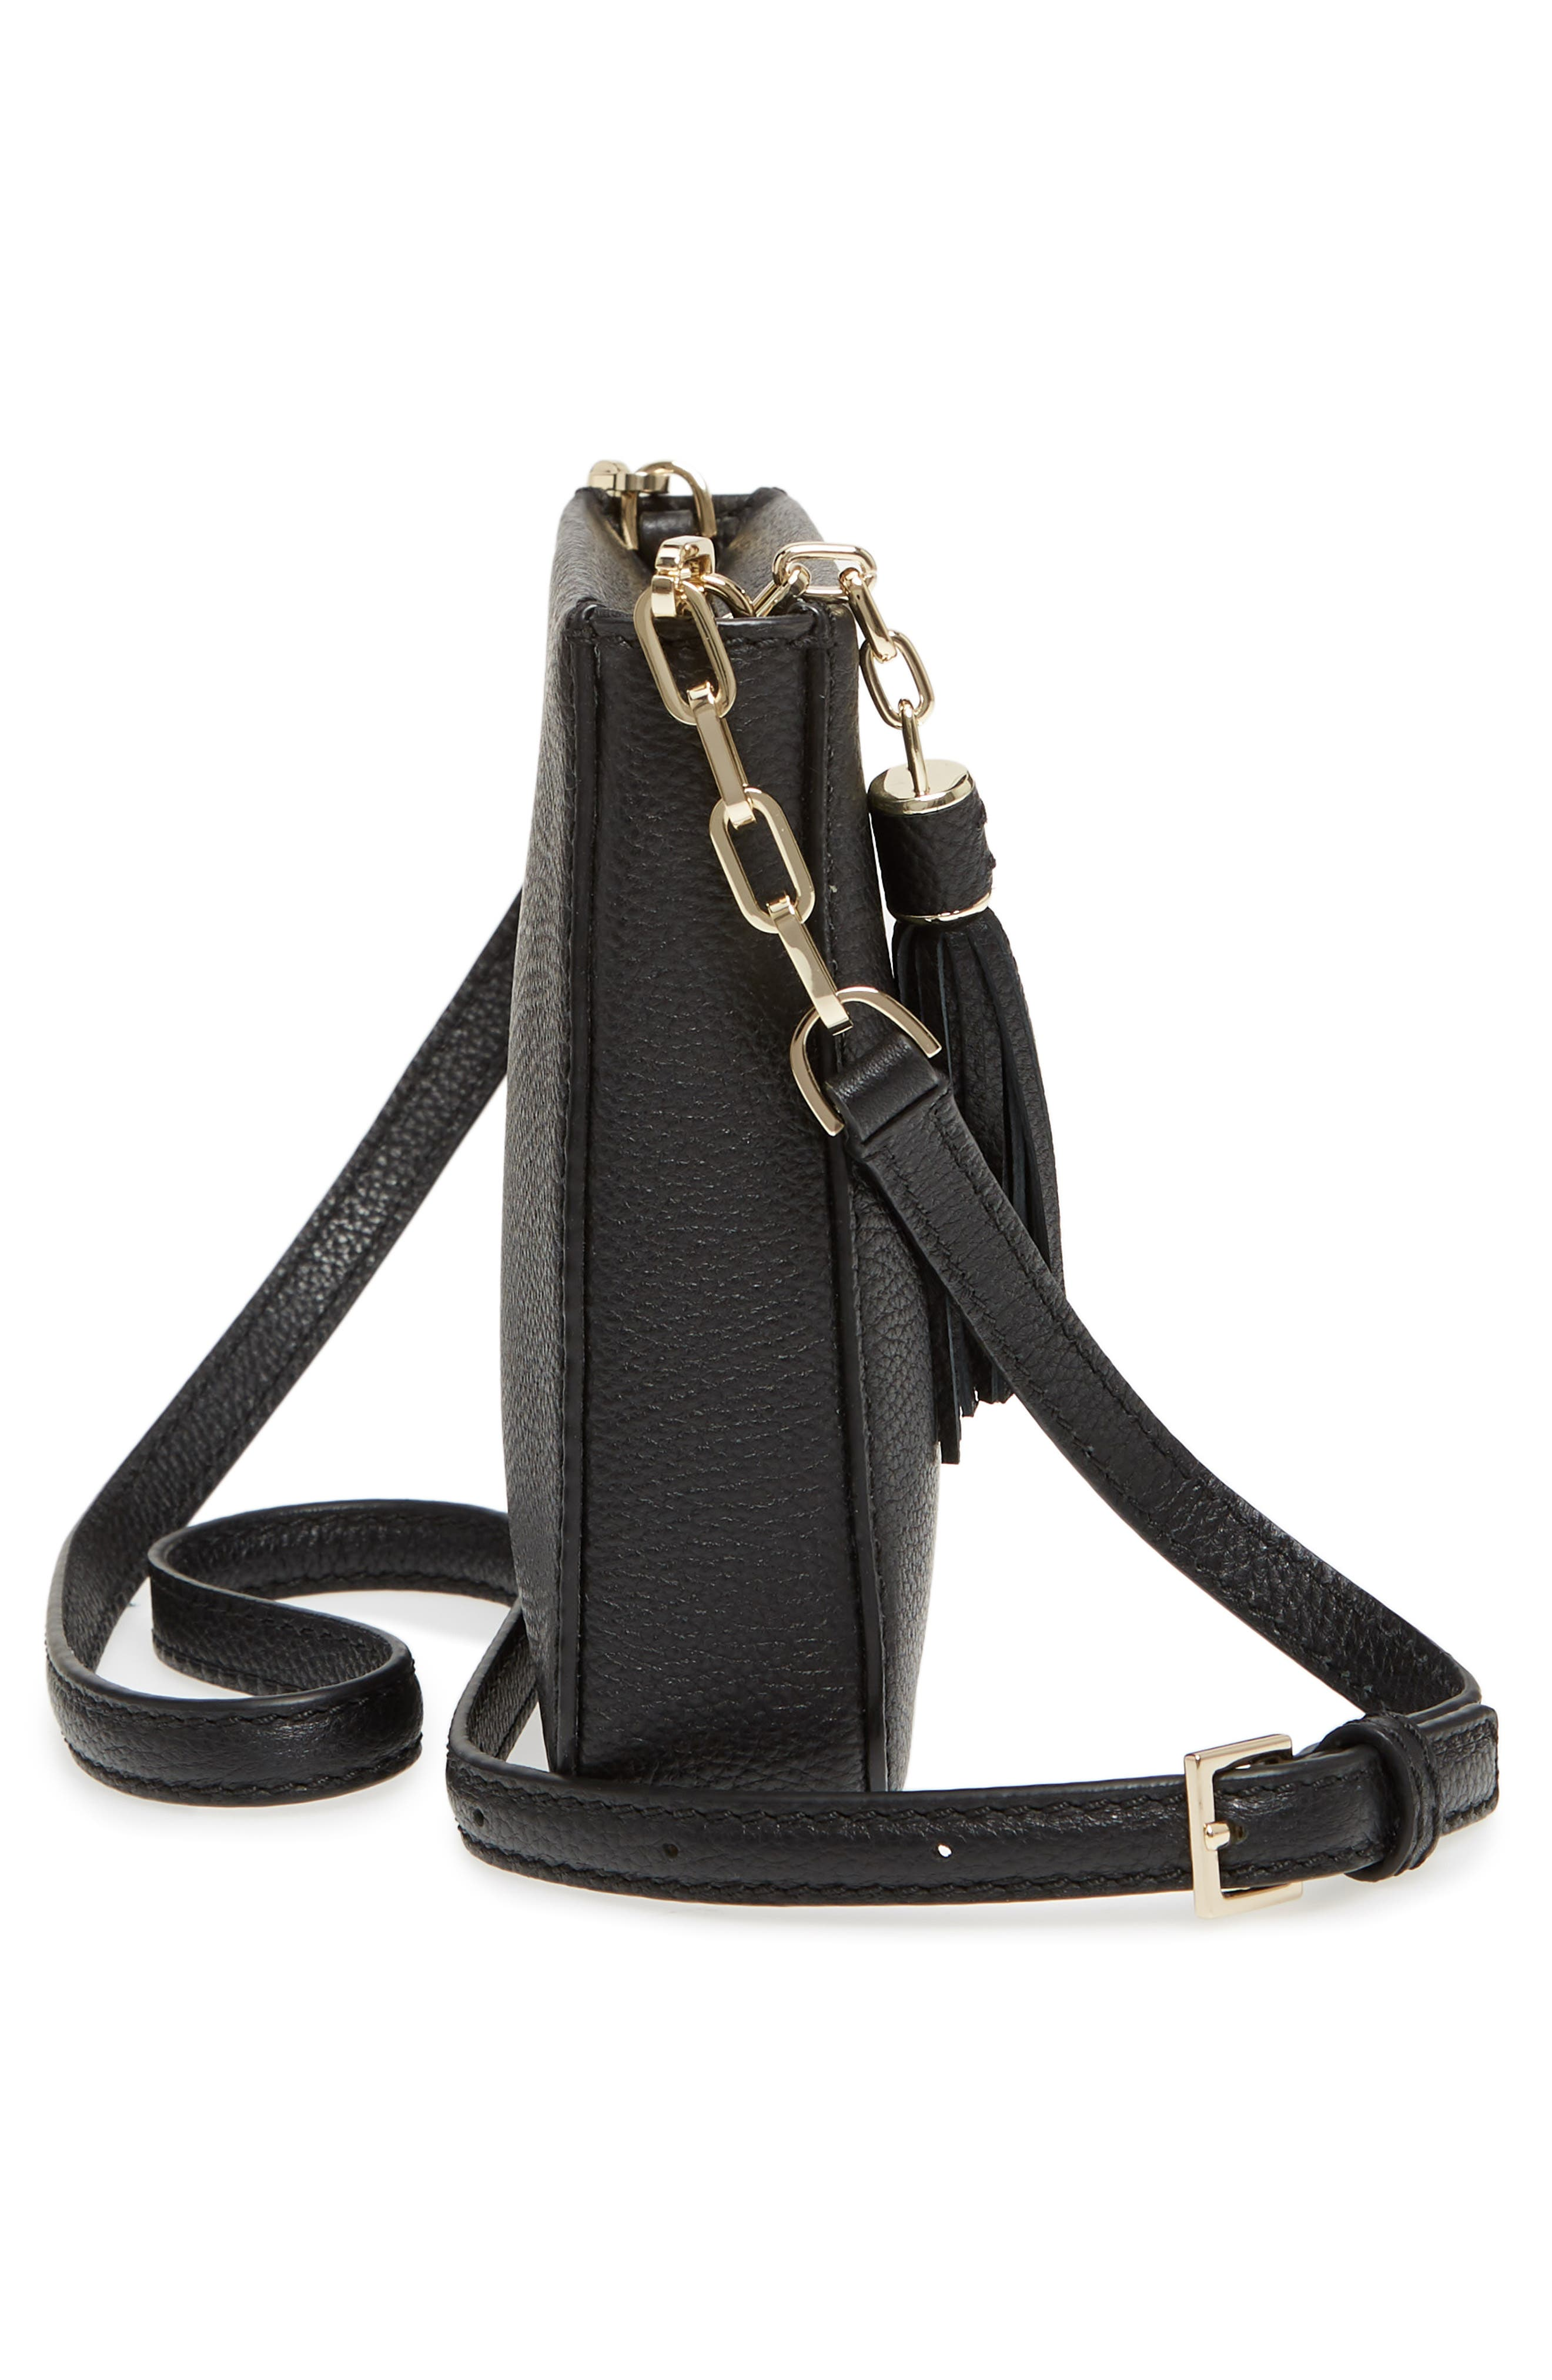 kingston drive - alessa leather shoulder/crossbody bag,                             Alternate thumbnail 5, color,                             001